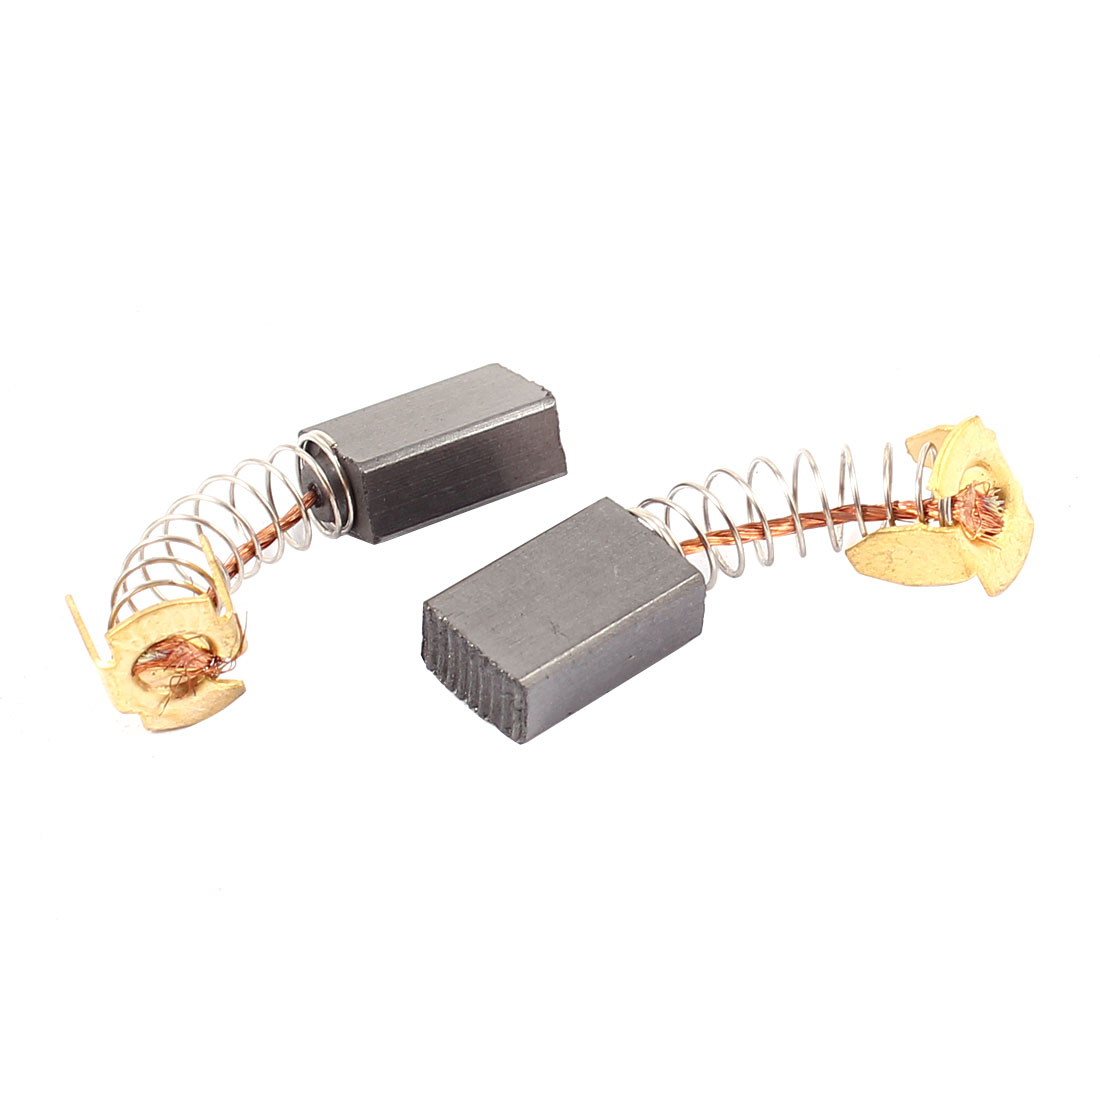 2 Pcs Replacement Electrical Motor Carbon Brushes 15mm x 10mm x 6mm for Motors